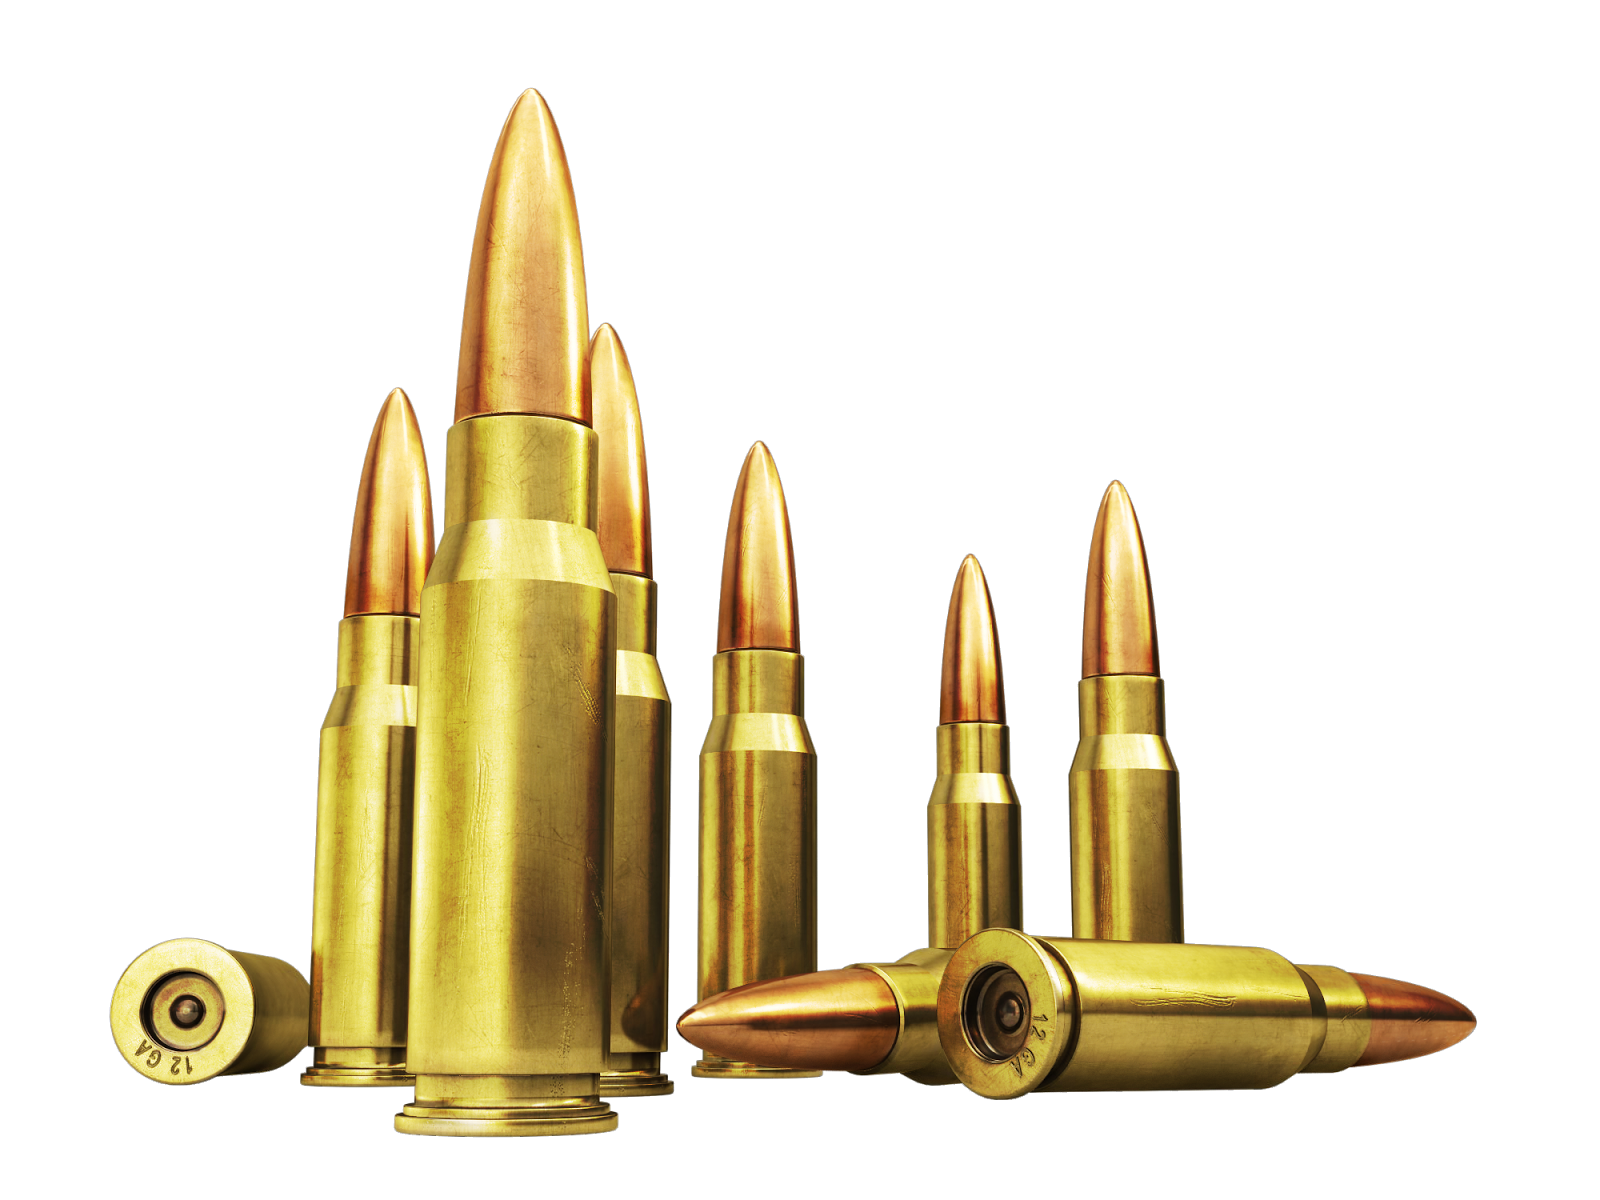 Vector bullet psd. Bullets png images image